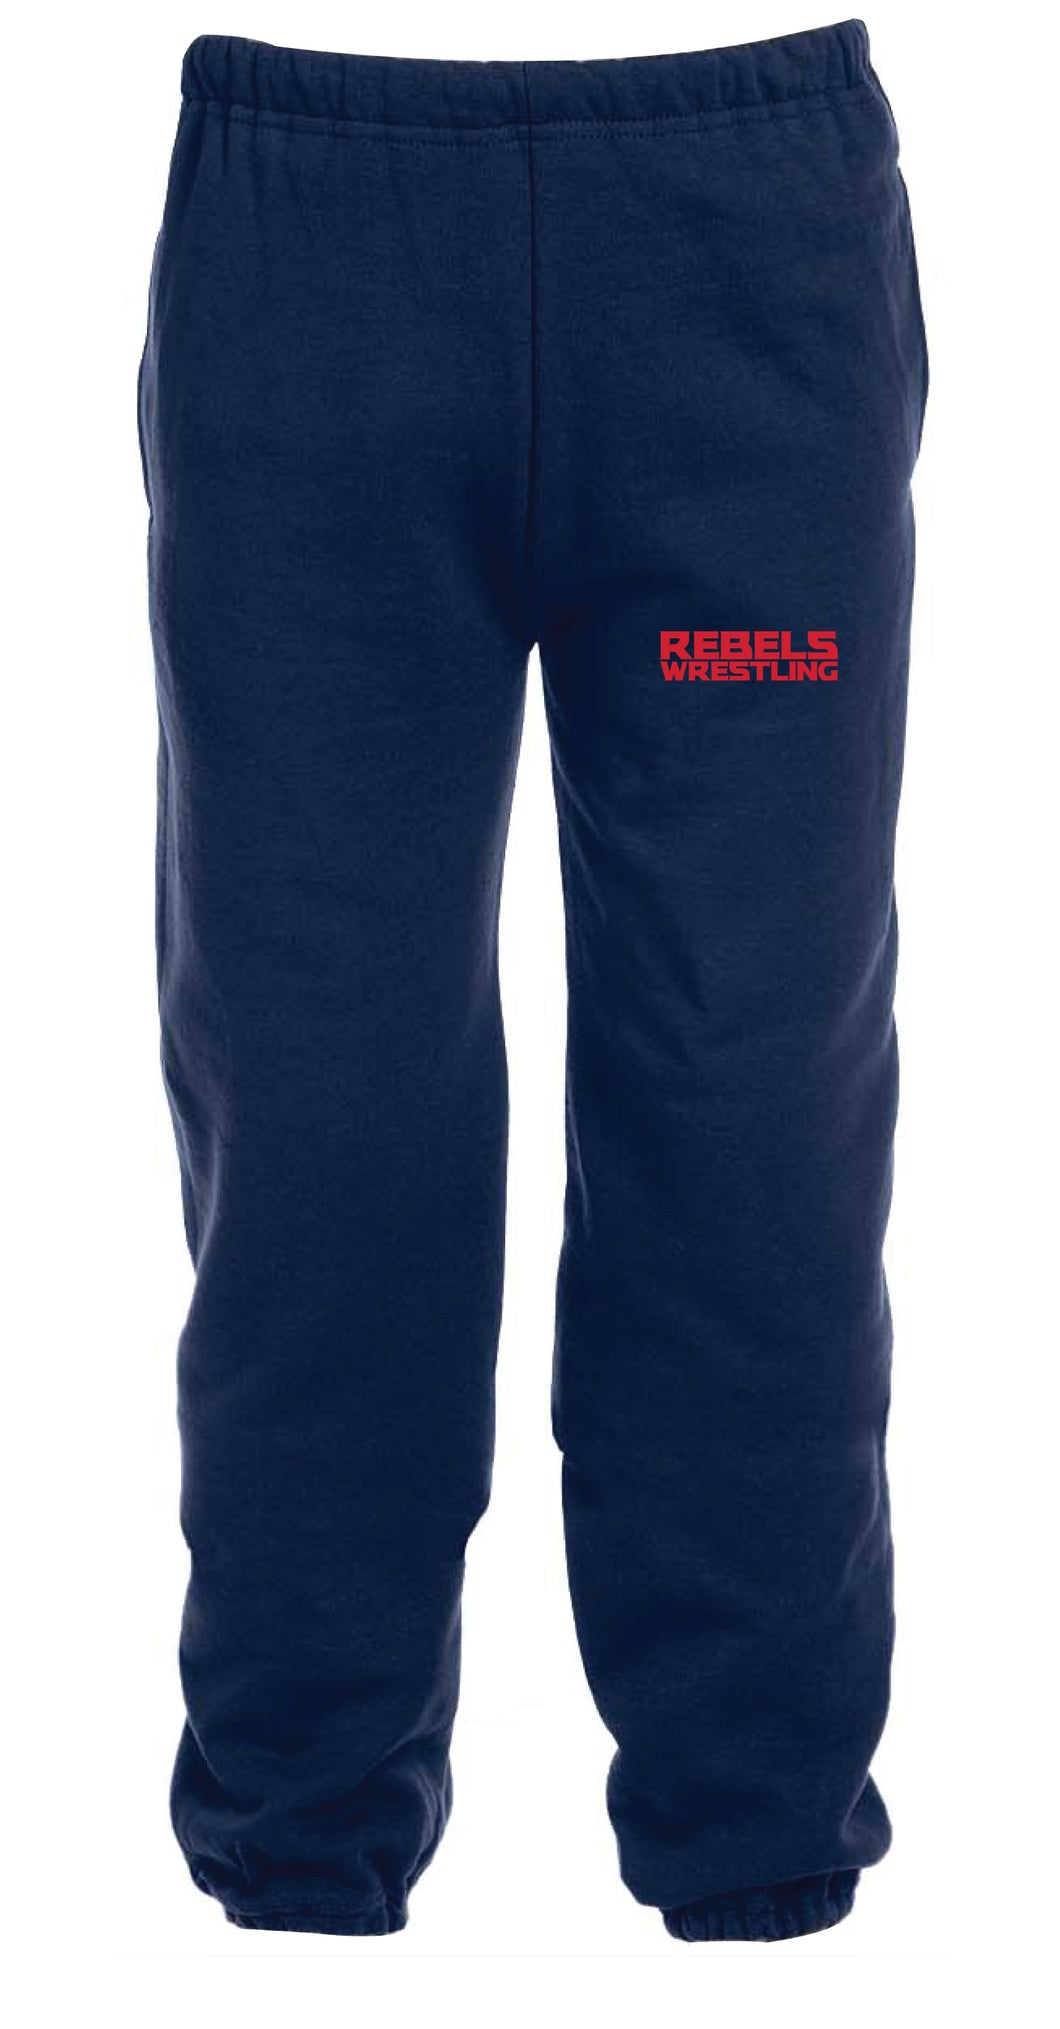 Rebels Wrestling Cotton Sweatpants